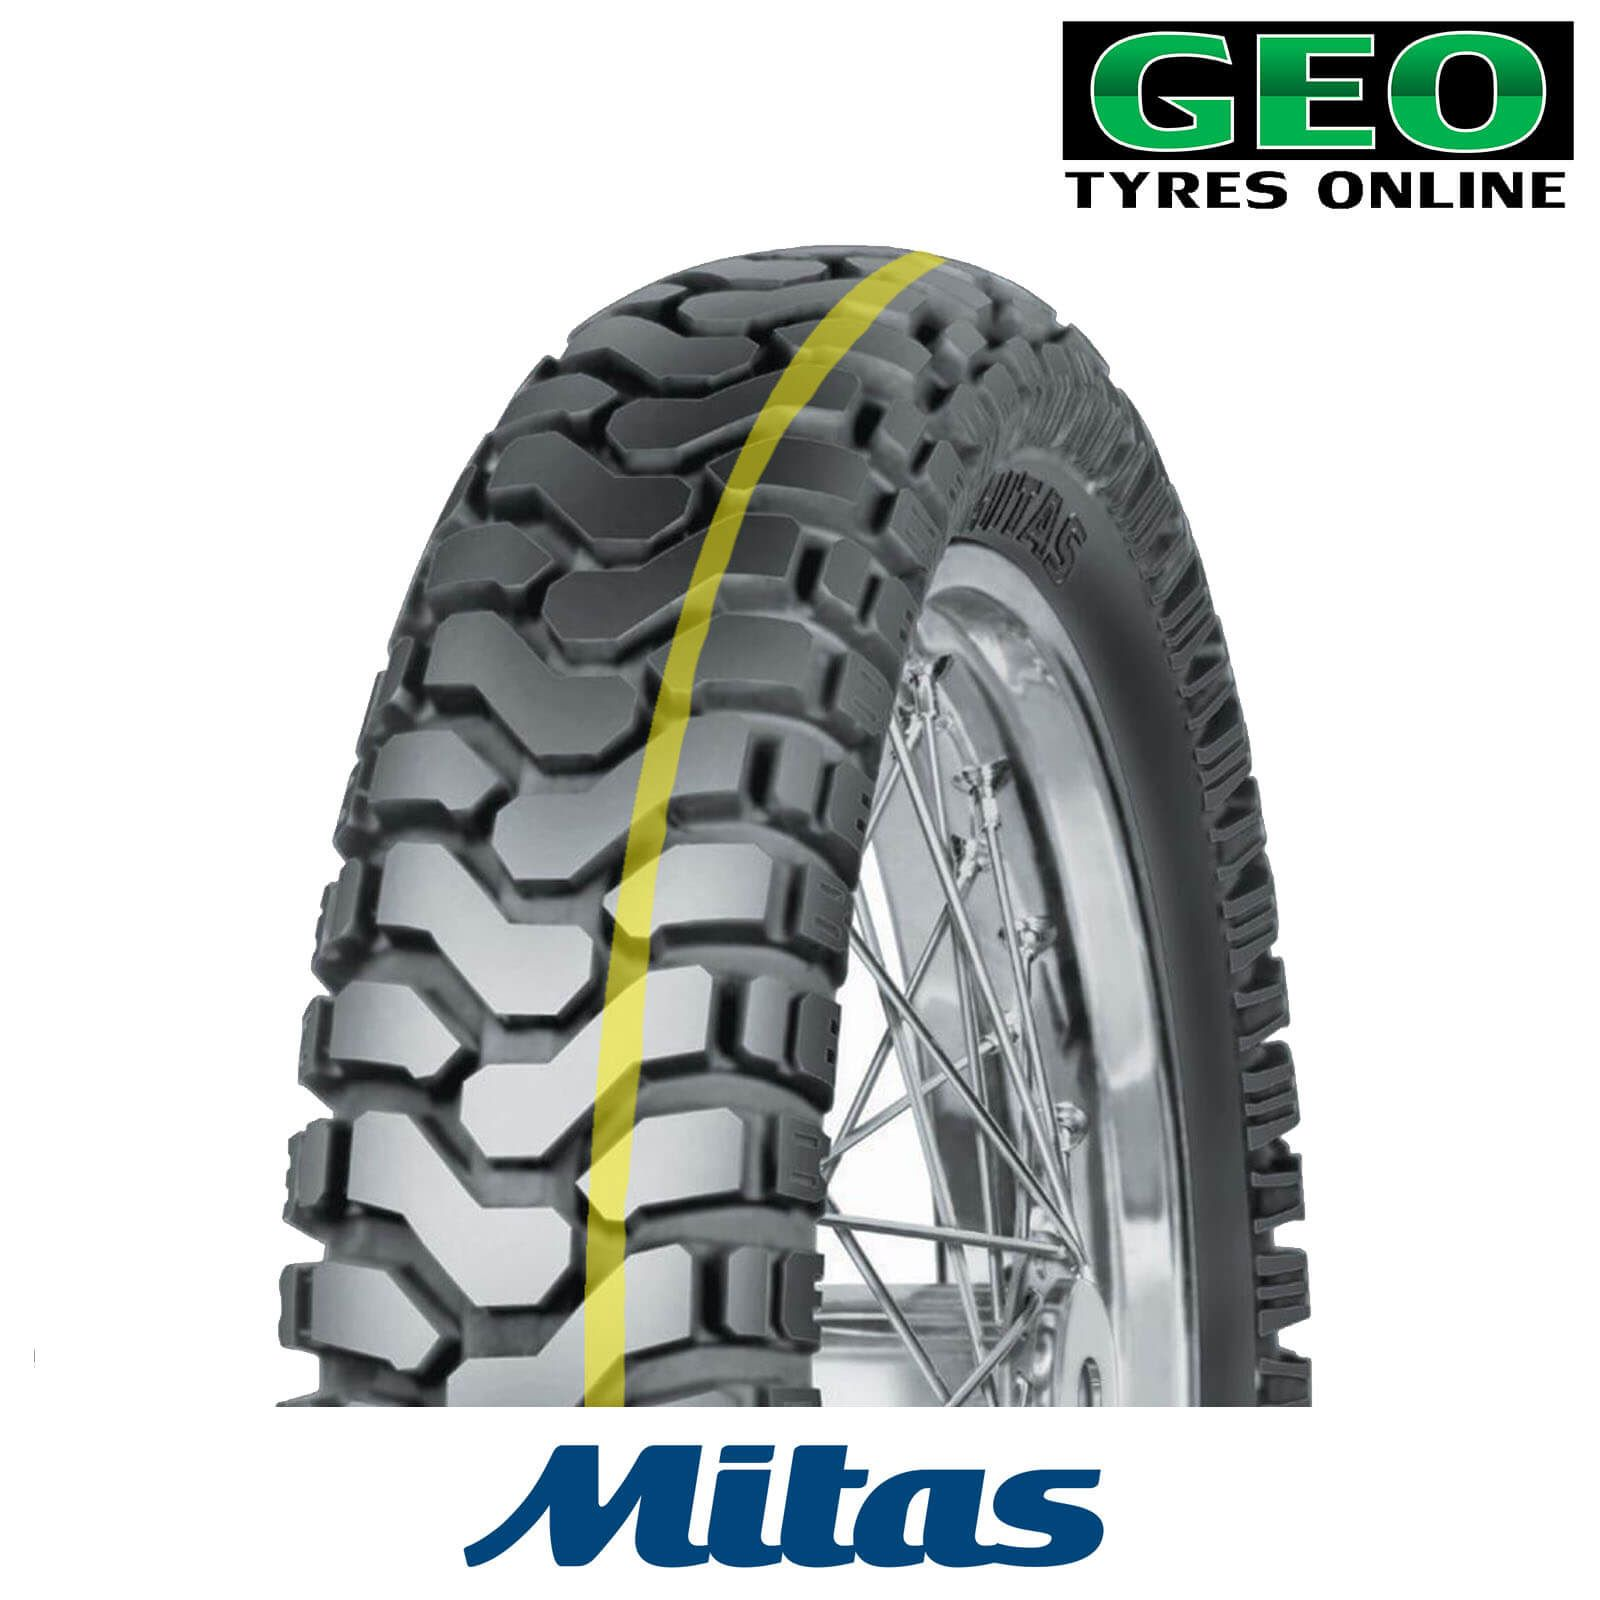 The Mitas E07D offers all the great features of the E07